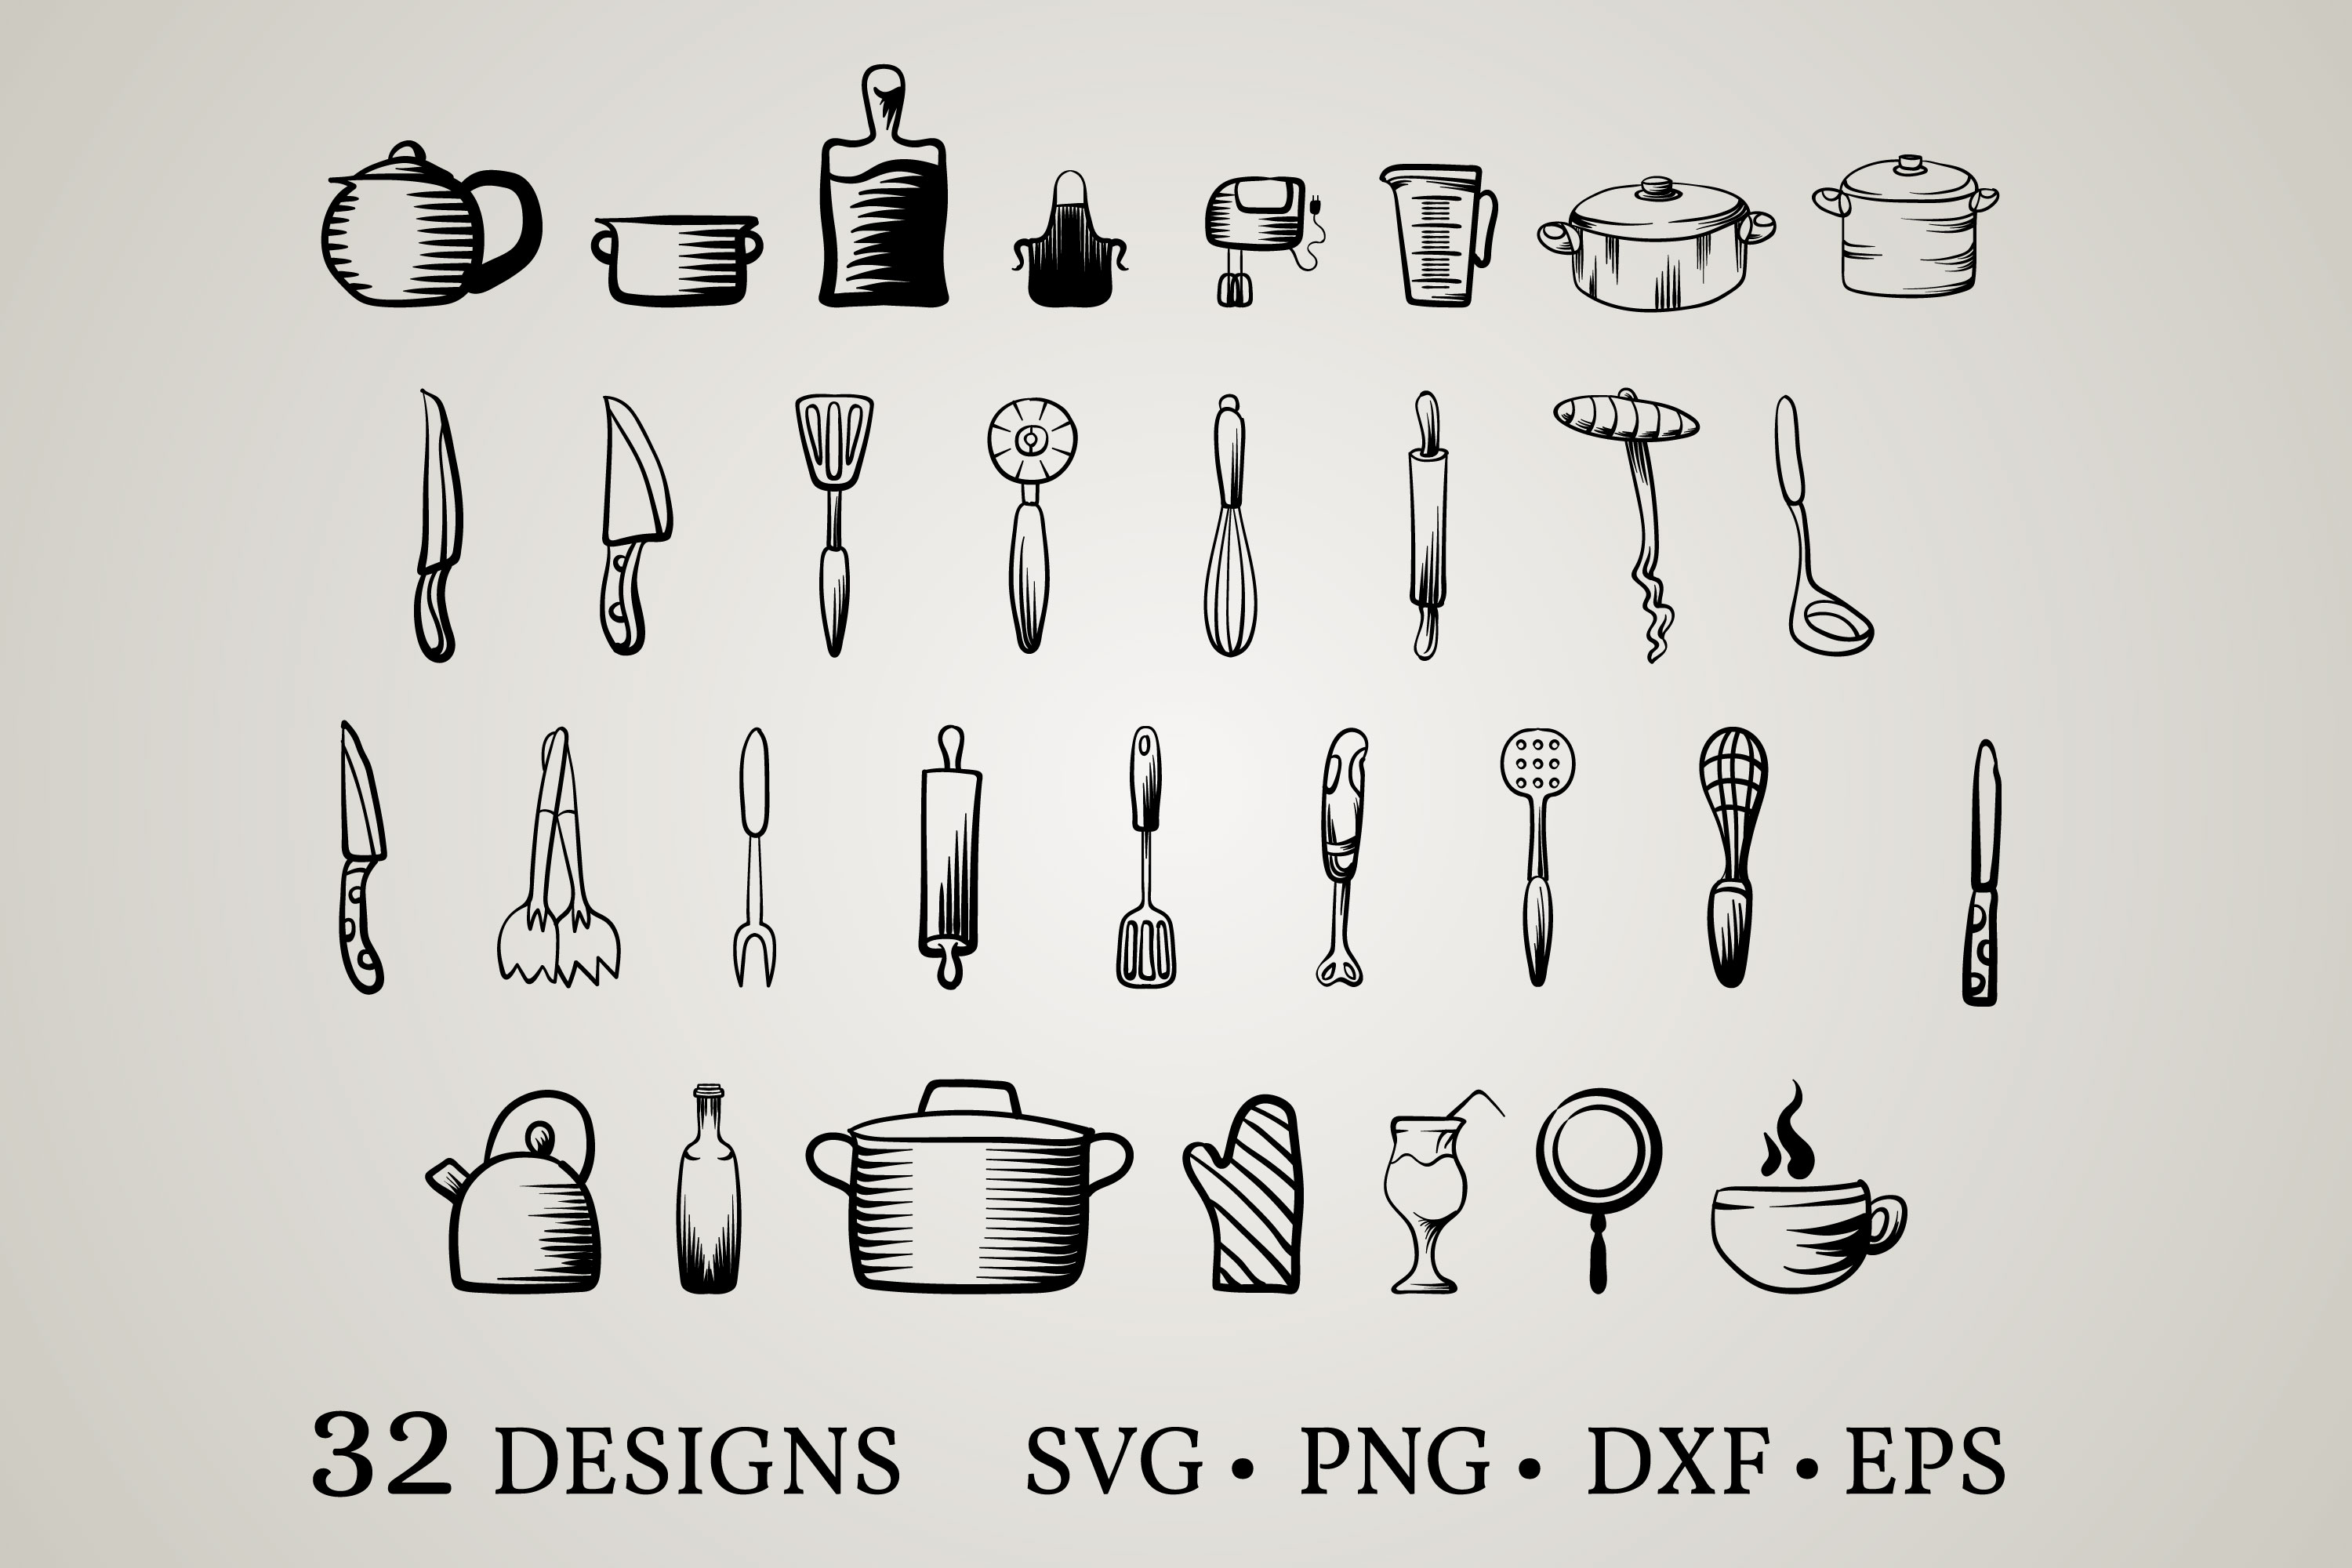 Download Free Cooking Utensils Bundle Graphic By Euphoria Design Creative Fabrica for Cricut Explore, Silhouette and other cutting machines.